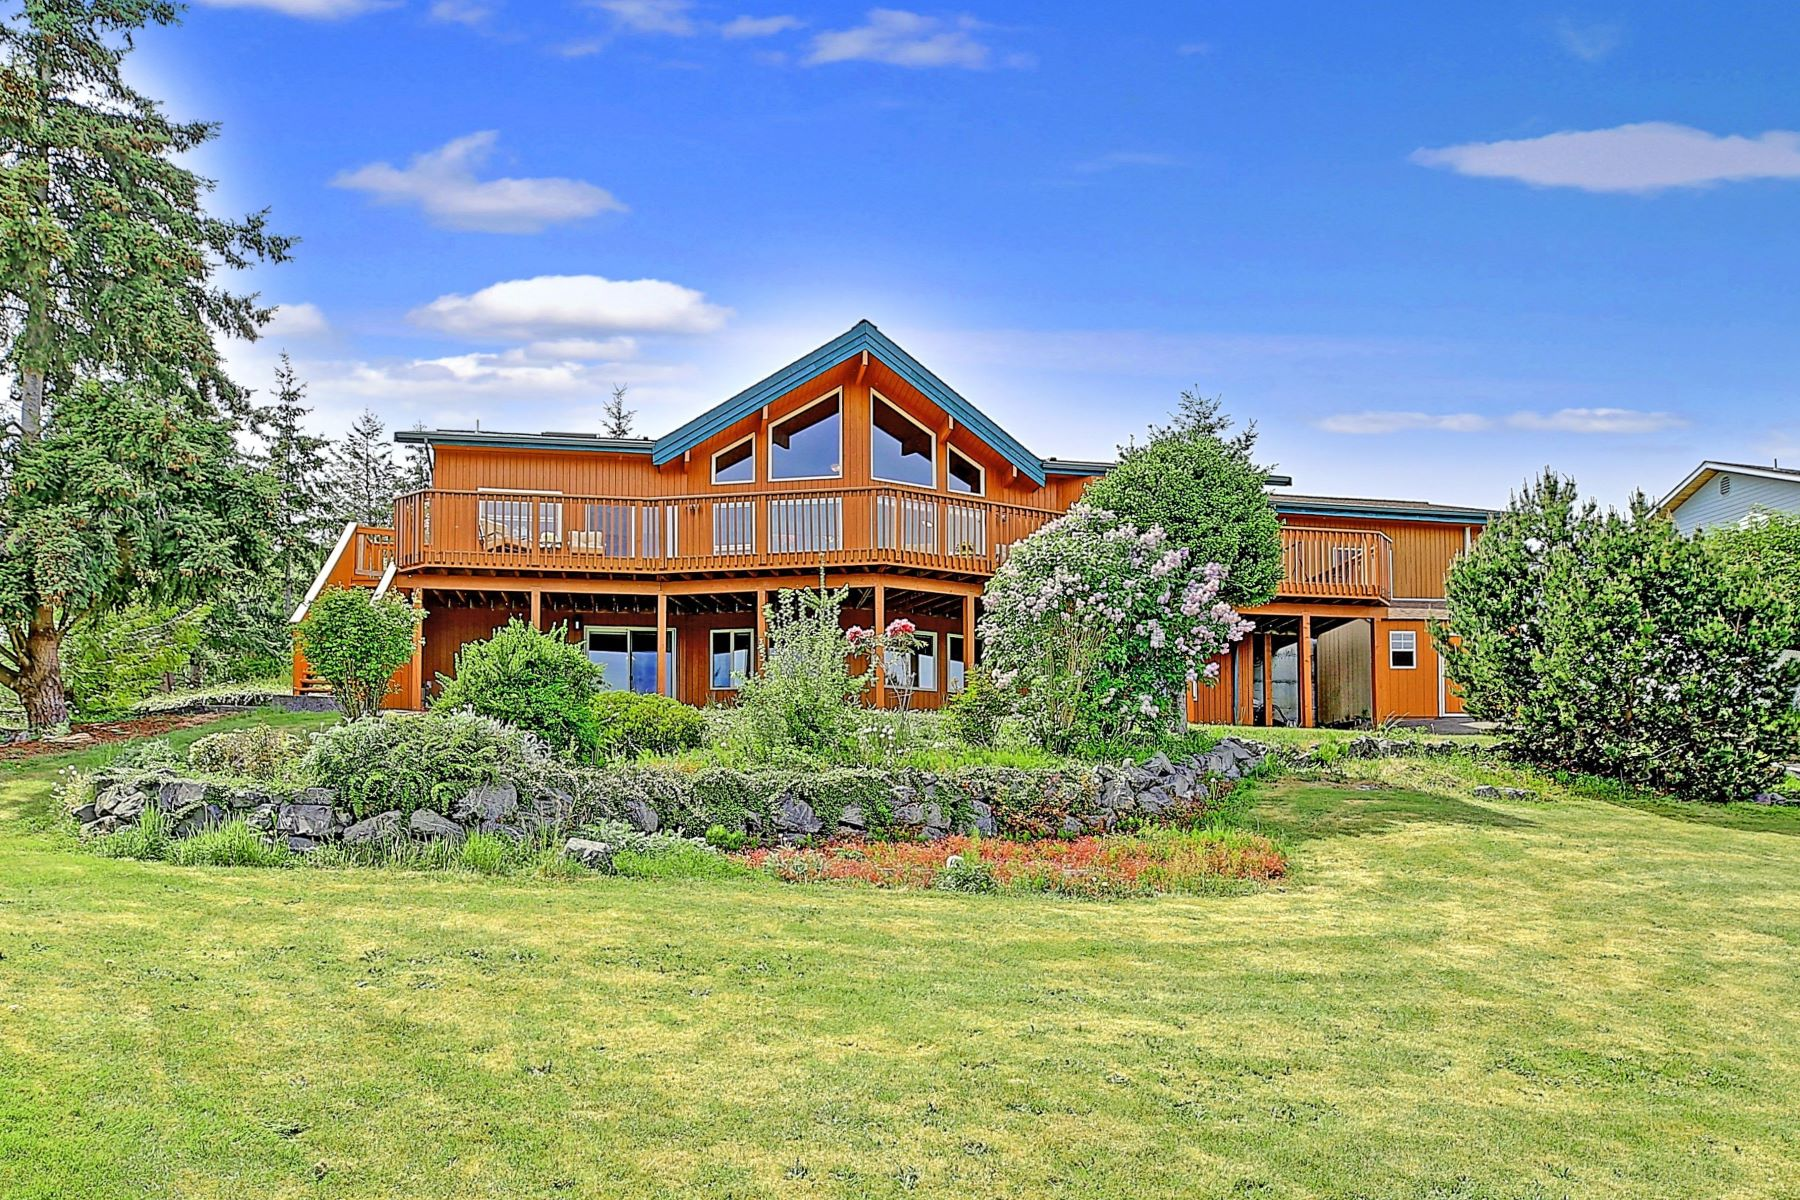 Single Family Homes for Sale at 1489 Crestview Dr, Camano Island, WA 98282 1489 Crestview Dr Camano Island, Washington 98282 United States